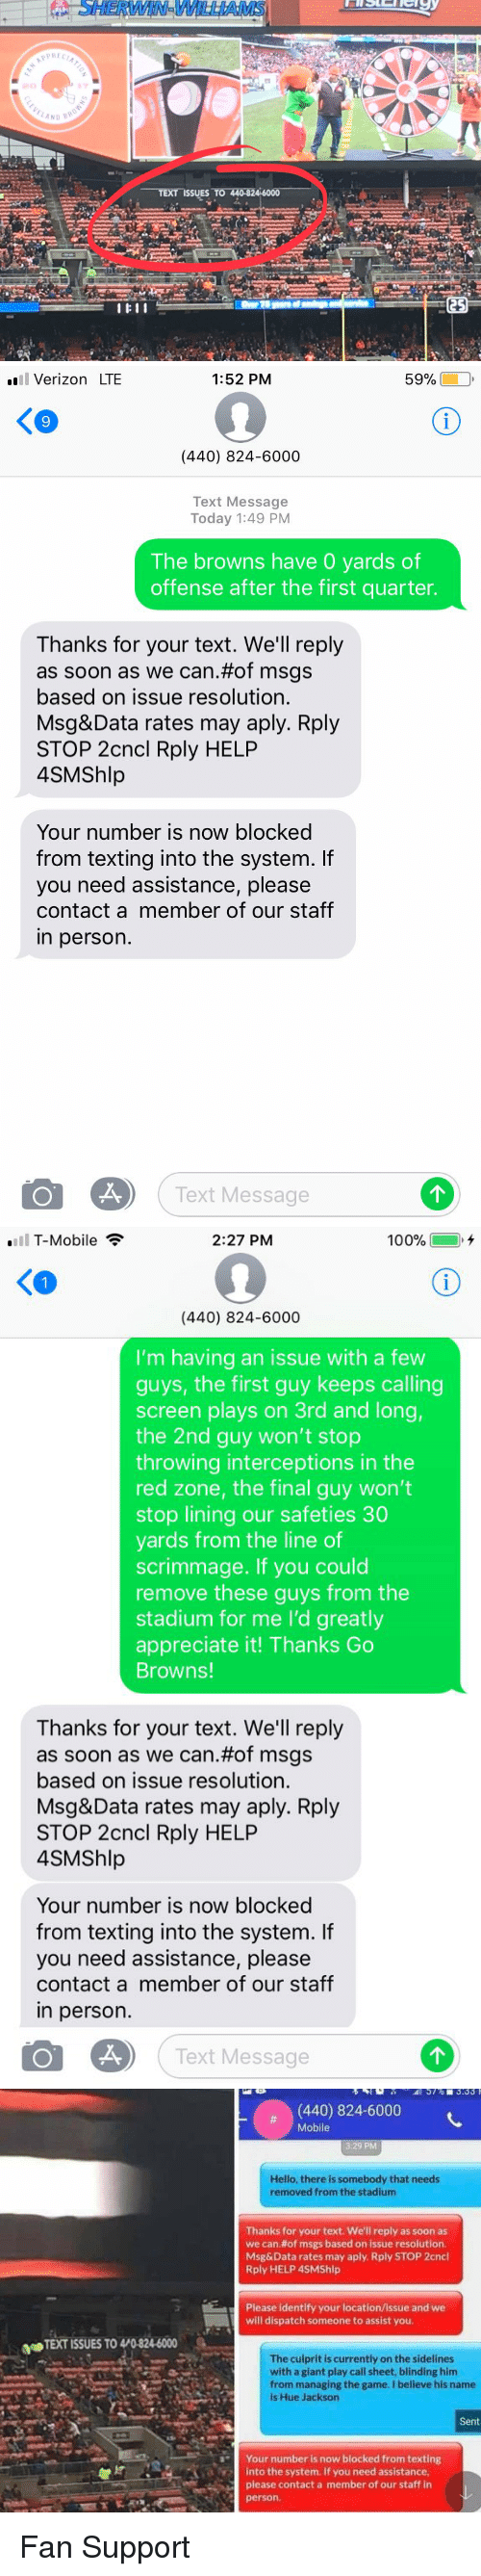 sidelines: SHERWIN, WILLIAMS  ND BR  TEXT-ISSUES TO 440-824-6000   l Verizon LTE  1:52 PM  59%  KO  9  (440) 824-6000  Text Message  Today 1:49 PM  The browns have 0 yards of  offense after the first quarter.  Thanks for your text. We'll reply  as soon as we can.#of msgs  based on issue resolution.  Msg&Data rates may aply. Rply  STOP 2cncl Rply HELP  4SMShlp  Your number is now blocked  from texting into the system. If  you need assistance, please  contact a member of our staff  in person.  Text Message   .111 T-Mobile  2:27 PM  100% @  i.+  KO  (440) 824-6000  I'm having an issue with a few  guys, the first guy keeps calling  screen plays on 3rd and long,  the 2nd guy won't stop  throwing interceptions in the  red zone, the final guy won't  stop lining our safeties 30  yards from the line of  scrimmage. If you could  remove these guys from the  stadium for me I'd greatly  appreciate it! Thanks Go  Browns!  Thanks for your text. We'll reply  as soon as we can.#of msgs  based on issue resolution.  Msg&Data rates may aply. Rply  STOP 2cncl Rply HELP  4SMShlp  Your number is now blocked  from texting into the system. f  you need assistance, please  contact a member of our staff  in person.  Text Message   (440) 824-6000  Mobile  3:29 PM  Hello, there is somebody that needs  removed from the stadium  Thanks for your text. We'll reply as soon as  we can#of msgs based on issue resolution.  Msg&Data rates may aply. Rply STOP 2cncl  Rply HELP 4SMShlp  Please identify your location/issue and we  will dispatch someone to assist you.  TEXT ISSUES TO 4/0-824-6000  The culprit is currently on the sidelines  with a giant play call sheet, blinding him  from managing the game. I believe his name  is Hue Jackson  Sent  Your number is now blocked from texting  into the system. If you need assistance  please contact a member of our staff in  person. Fan Support